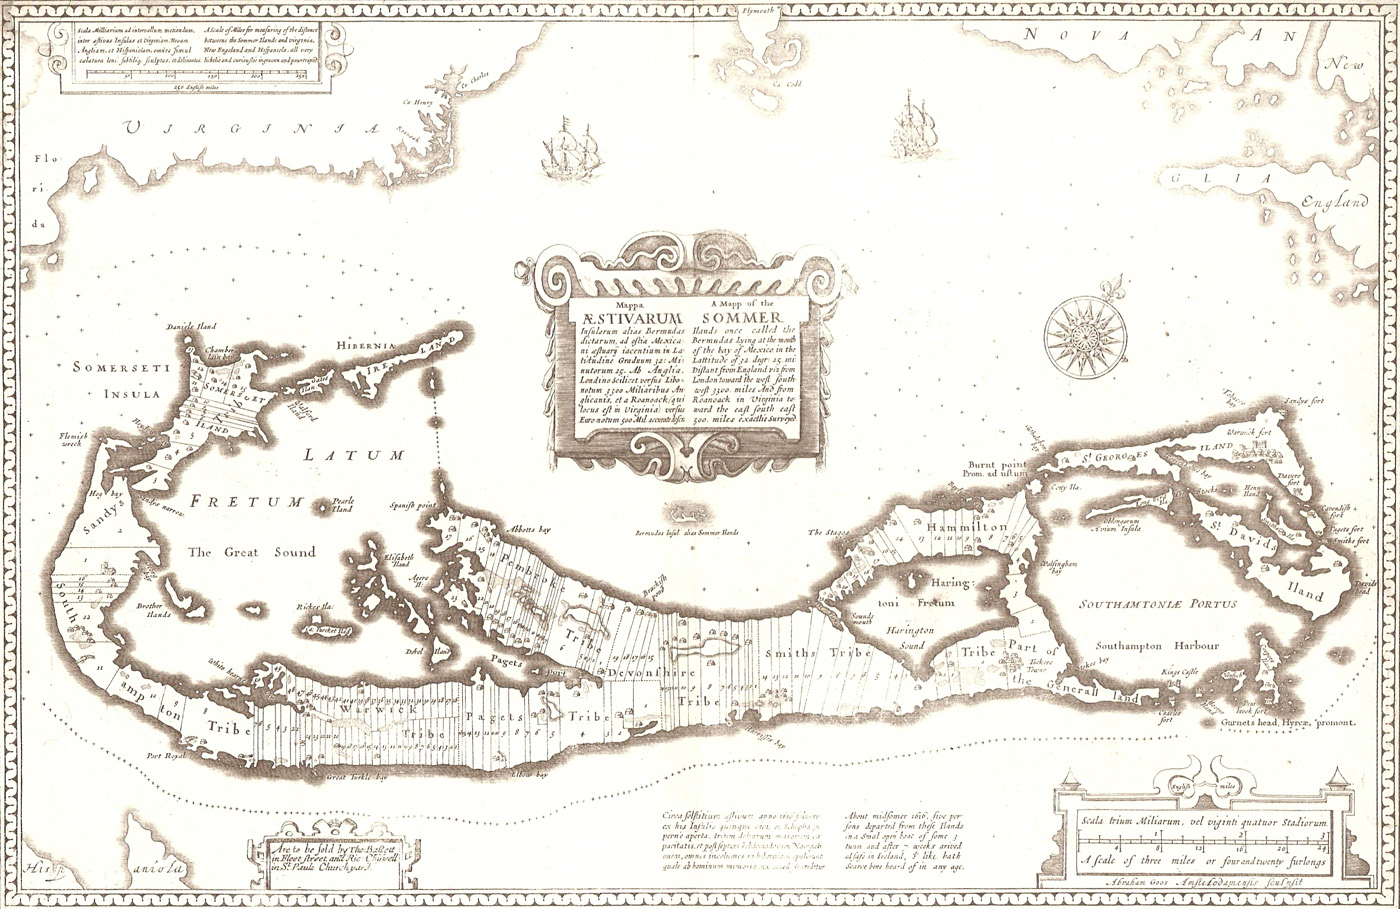 John Speed's 1676 map of Bermuda